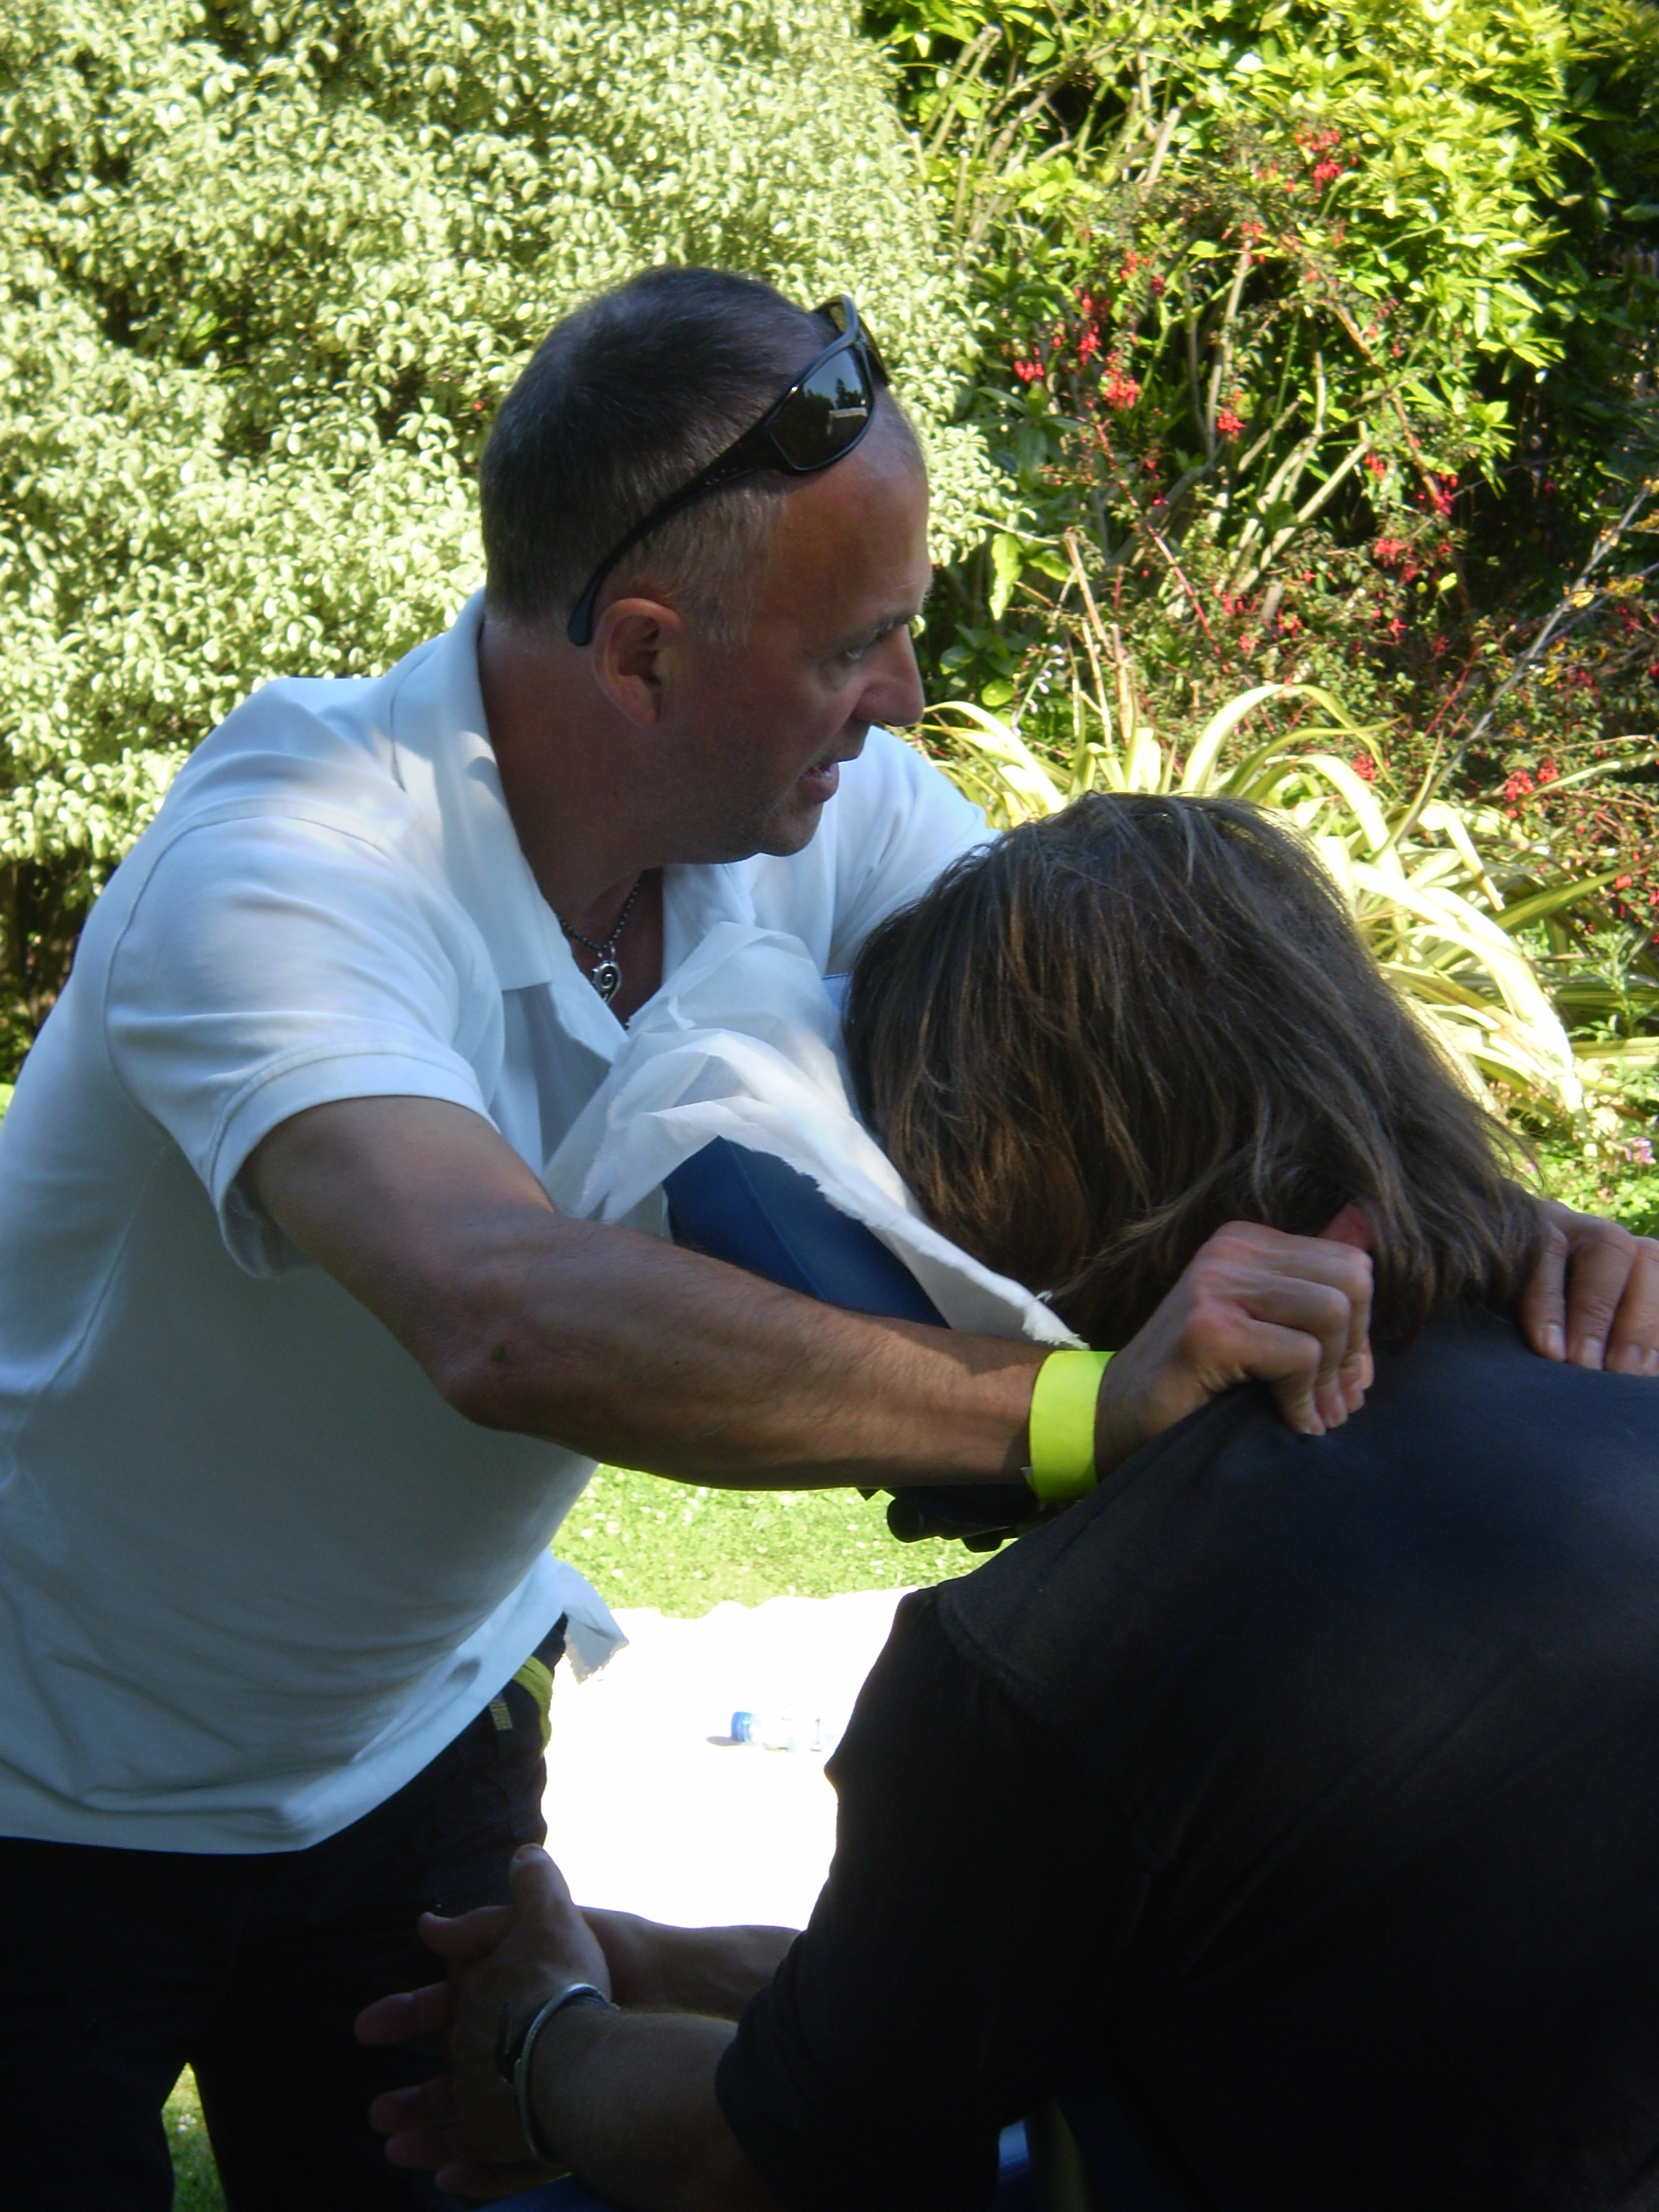 Albie treats one of the musicians in the gardens